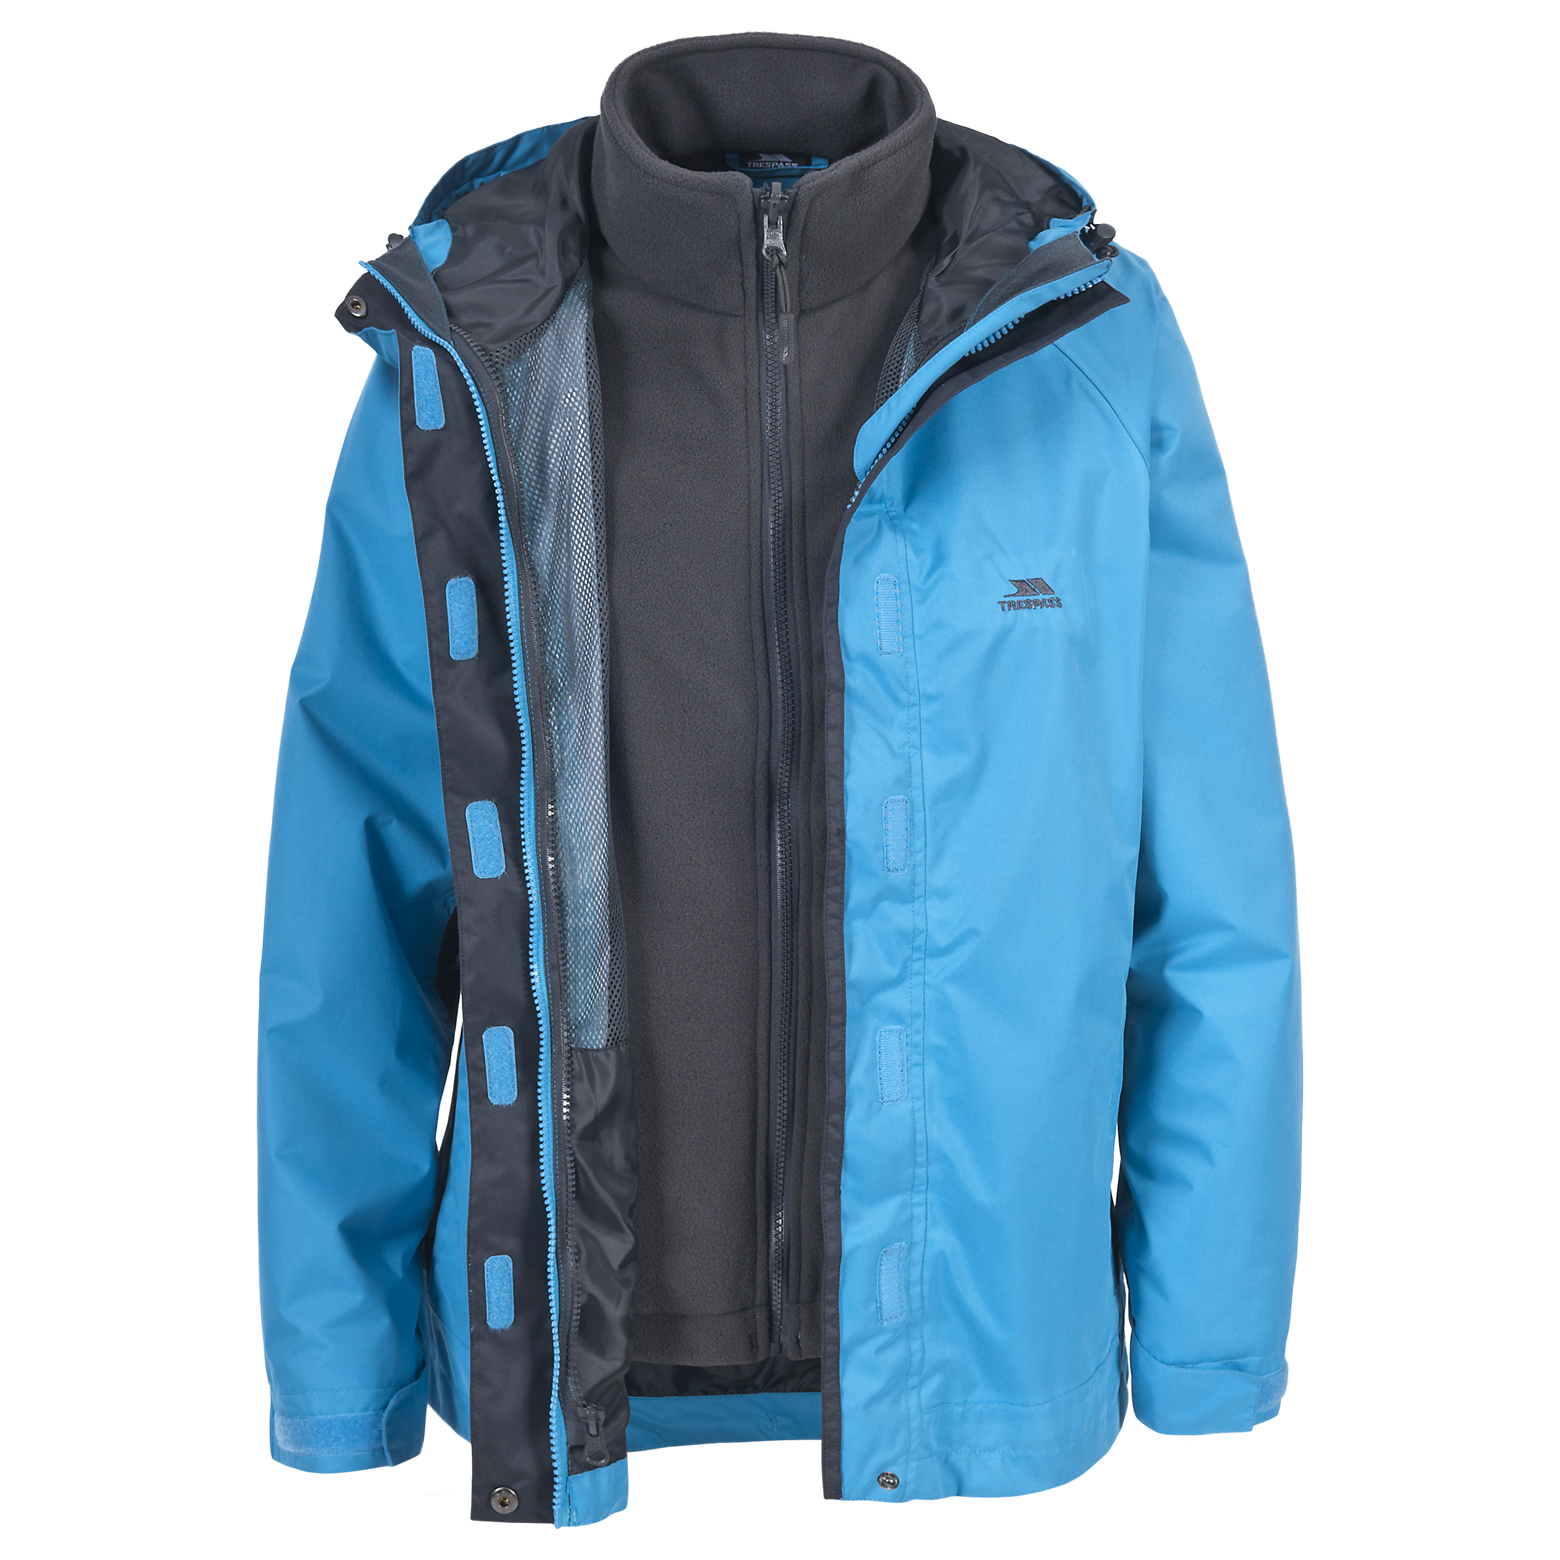 Wind and a water resistant shell for spring. 3 coats in 1 the shell jacket is a water and wind resistant technical poly and features a simple elasticized draw cord hood that is detachable along with function able multi pockets and a dual adjust draw cord hem to block out the elements.